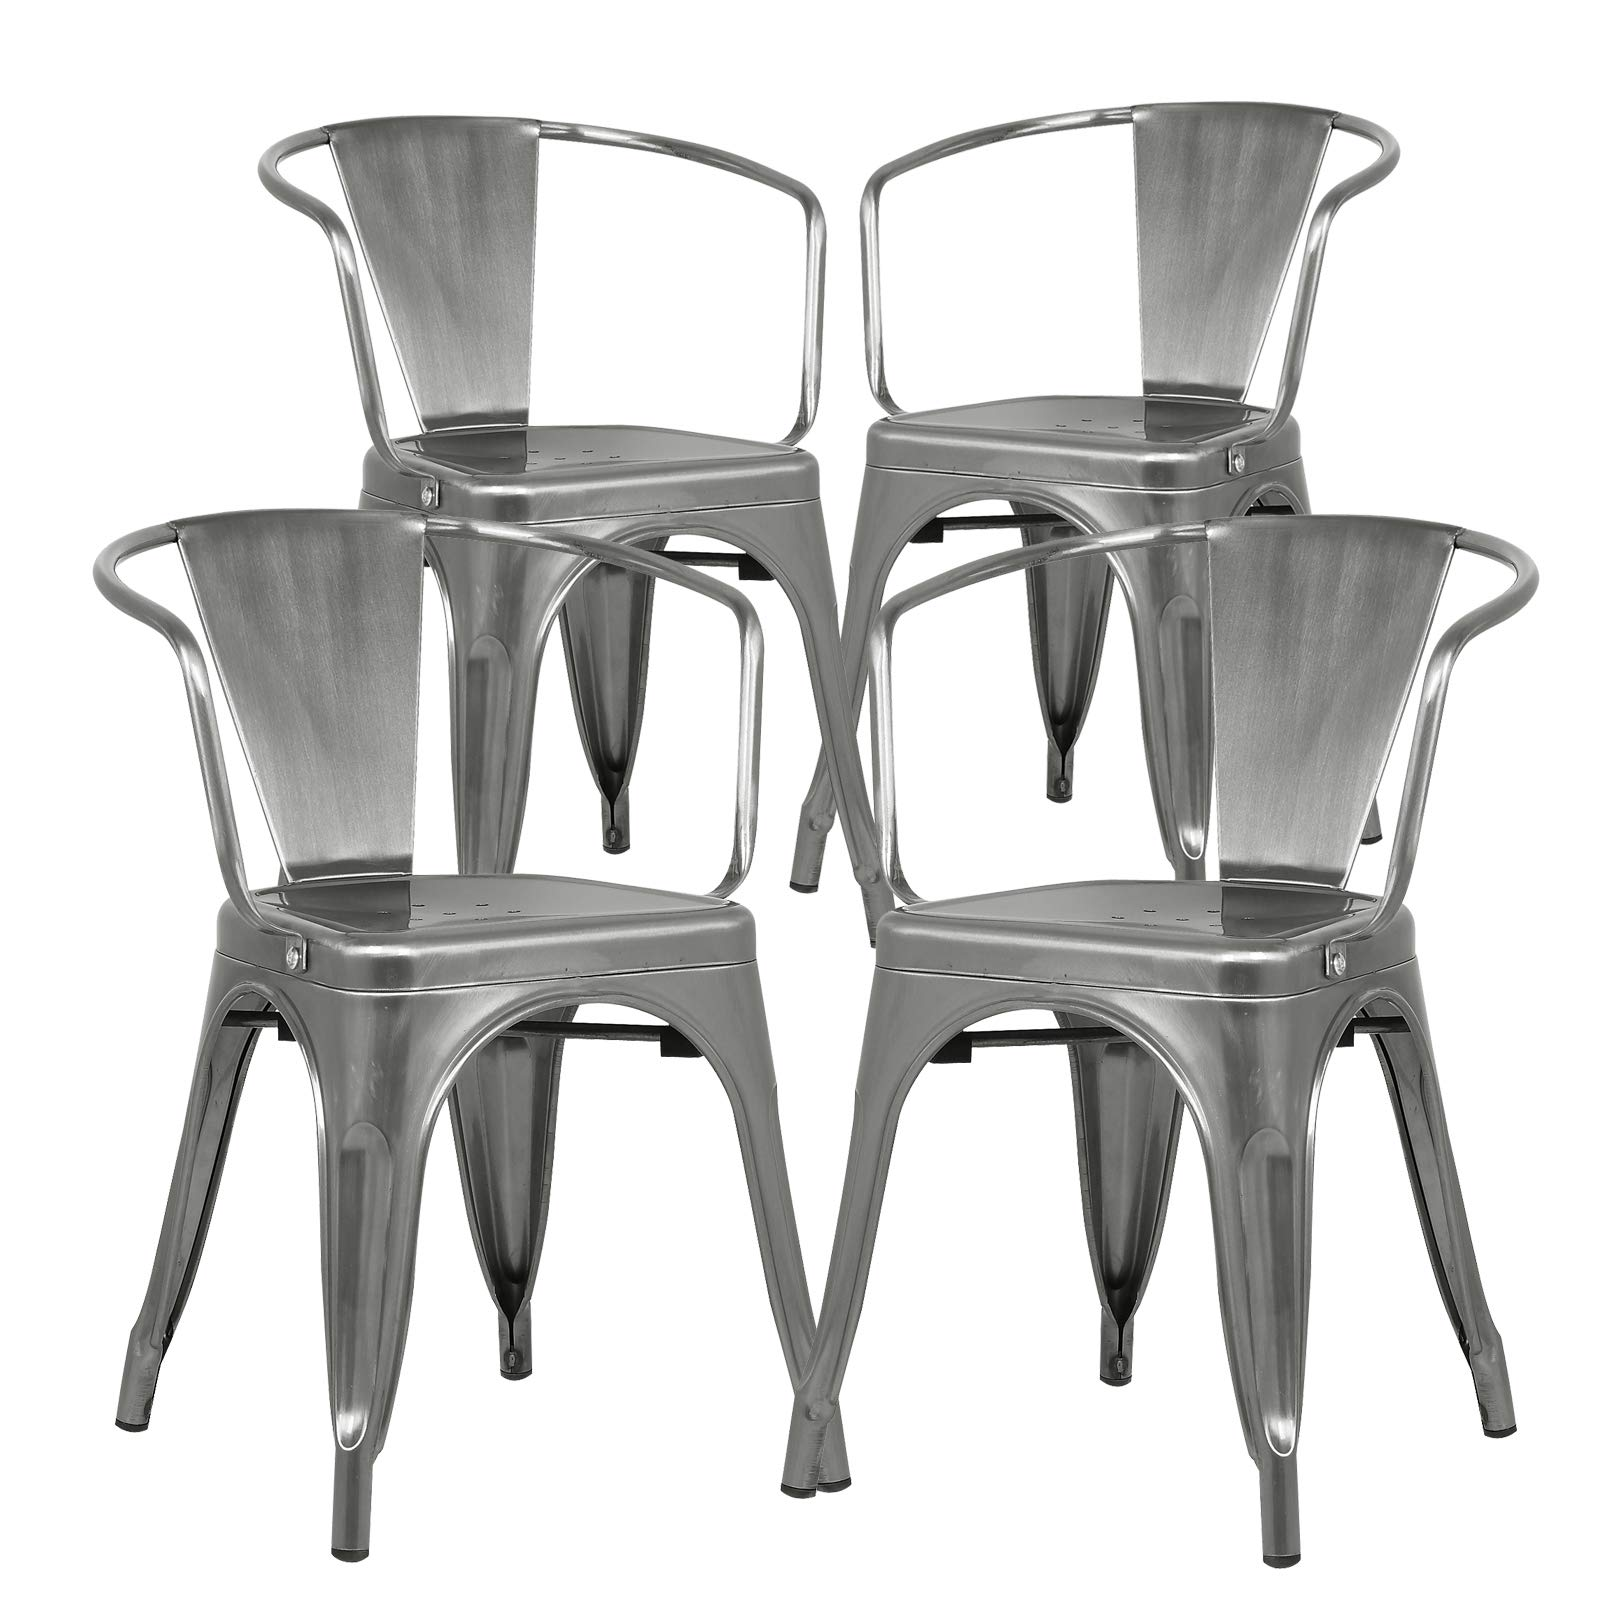 Poly and Bark Trattoria Modern Mid-Century Dining Kitchen Metal Side Arm Chair in Polished Gunmetal (Set of 4) by POLY & BARK